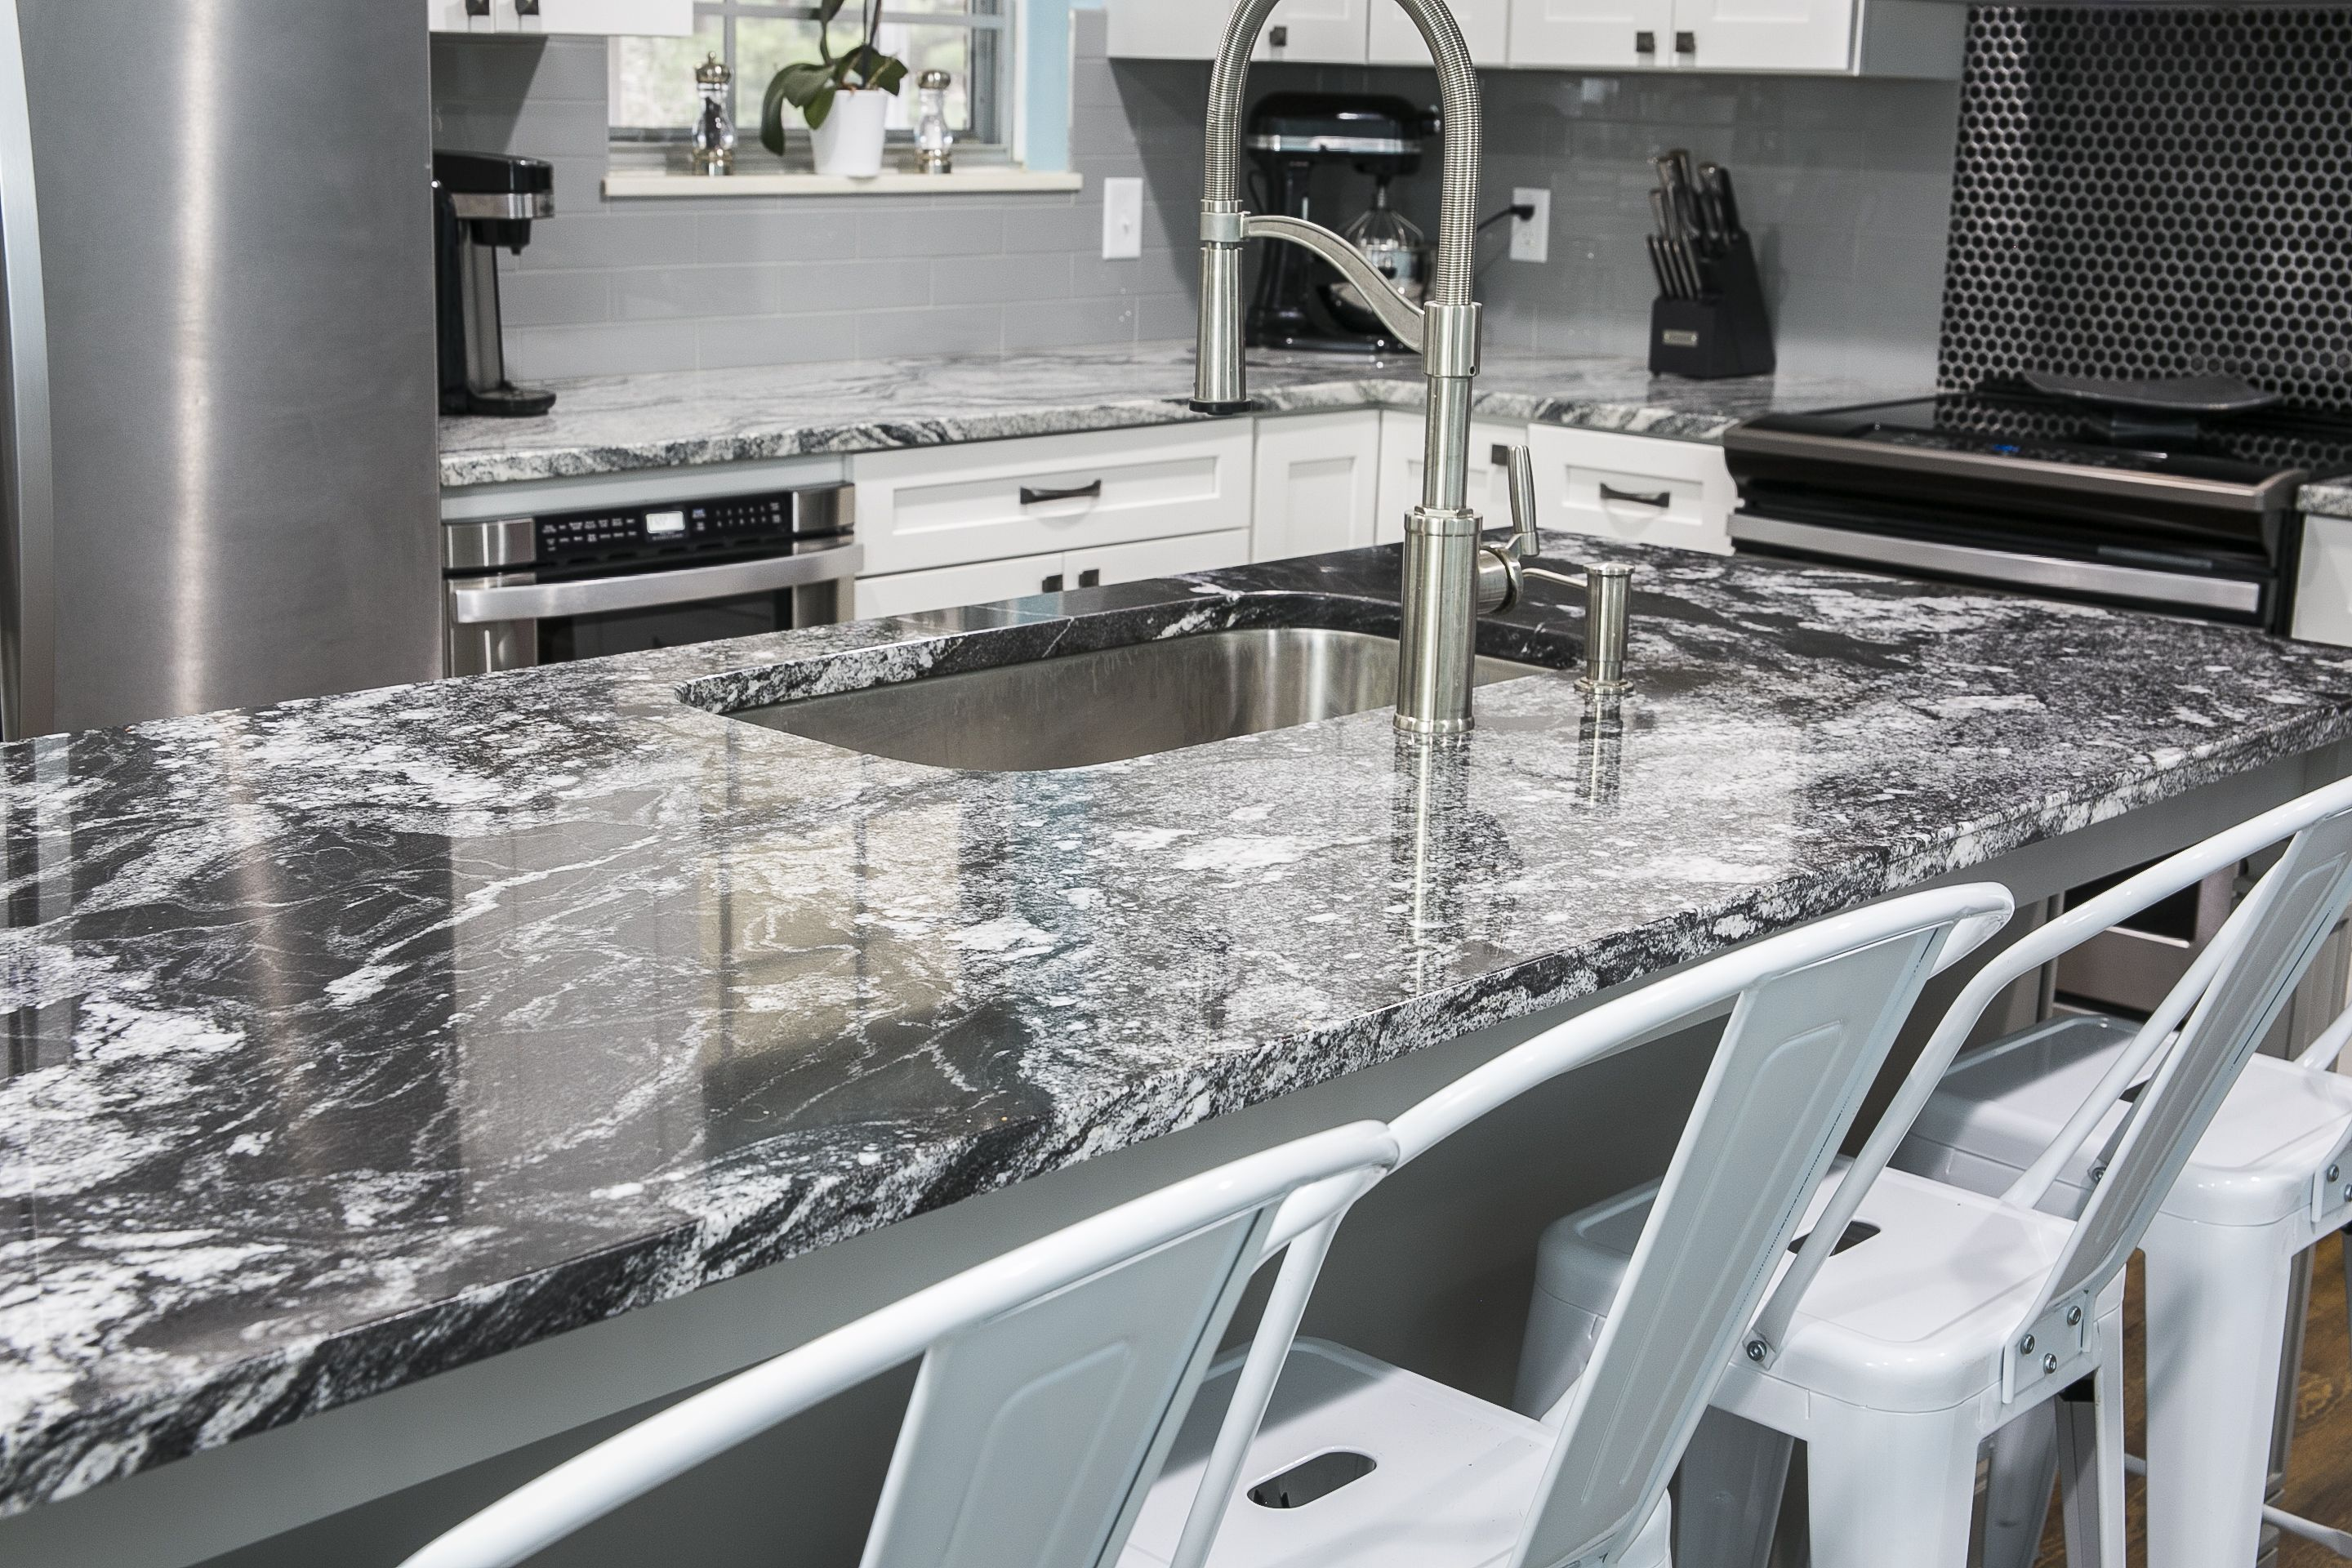 This Knoxville Tn Home Was Updated With Beautiful Black Forest Granite Countertops On Their Island By Knoxvill